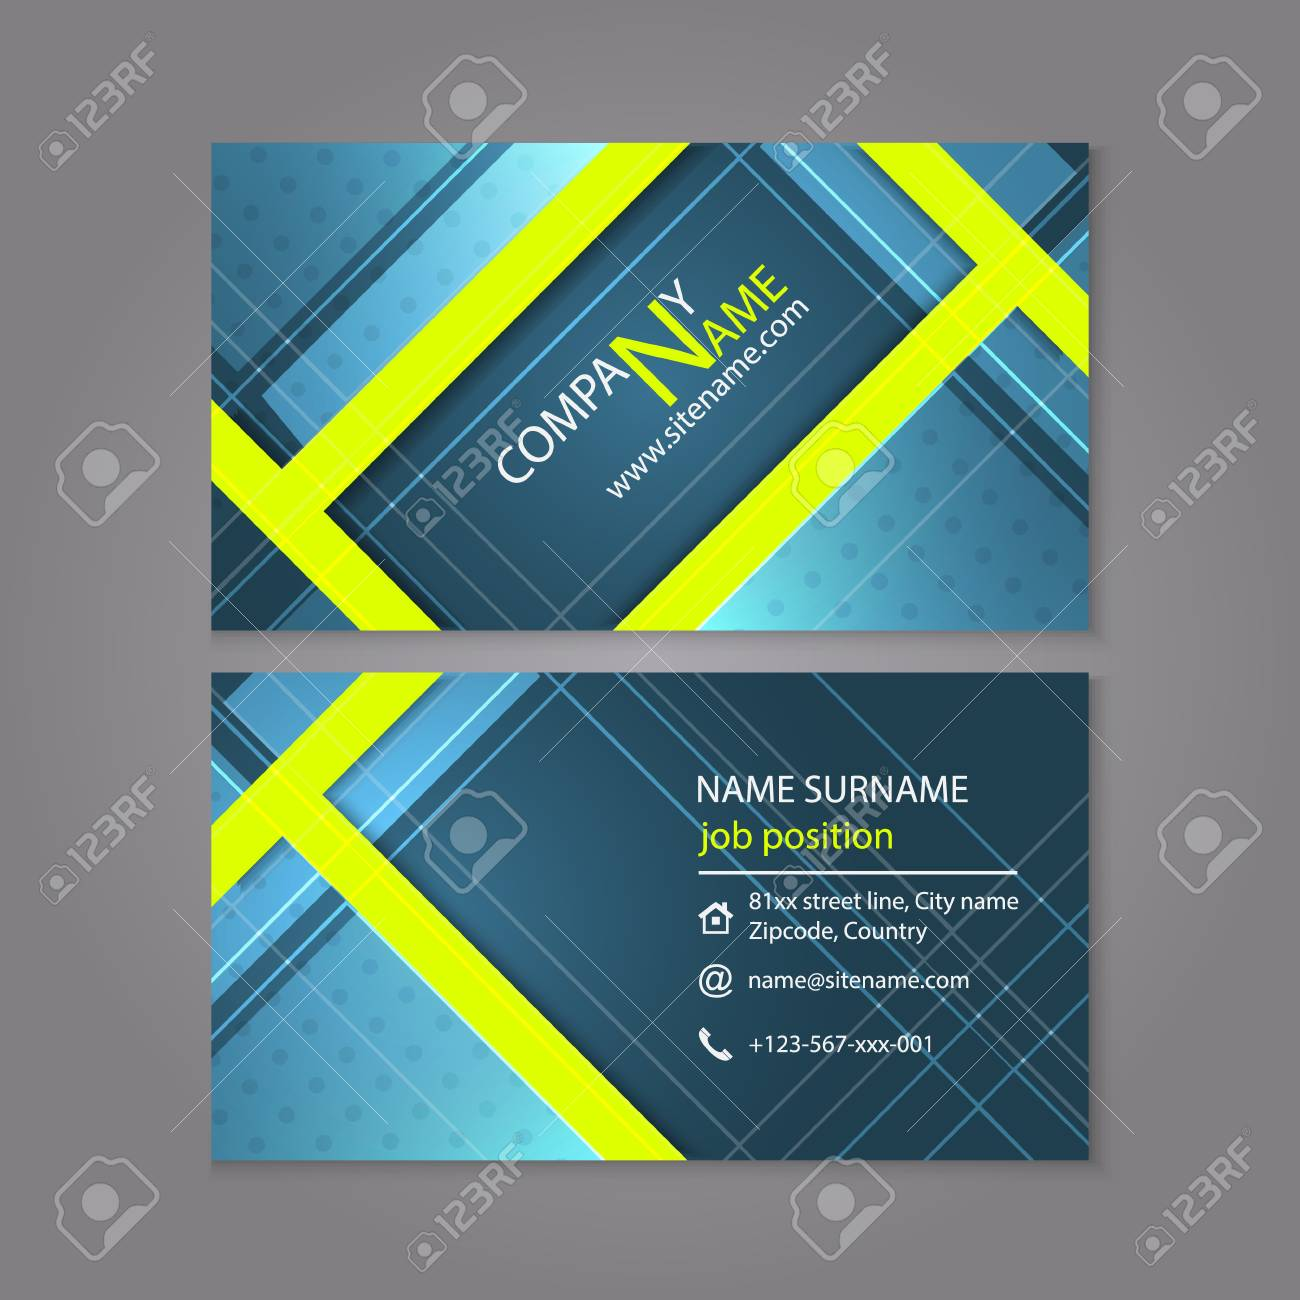 professional business card template design or visiting card set stock vector 44166184